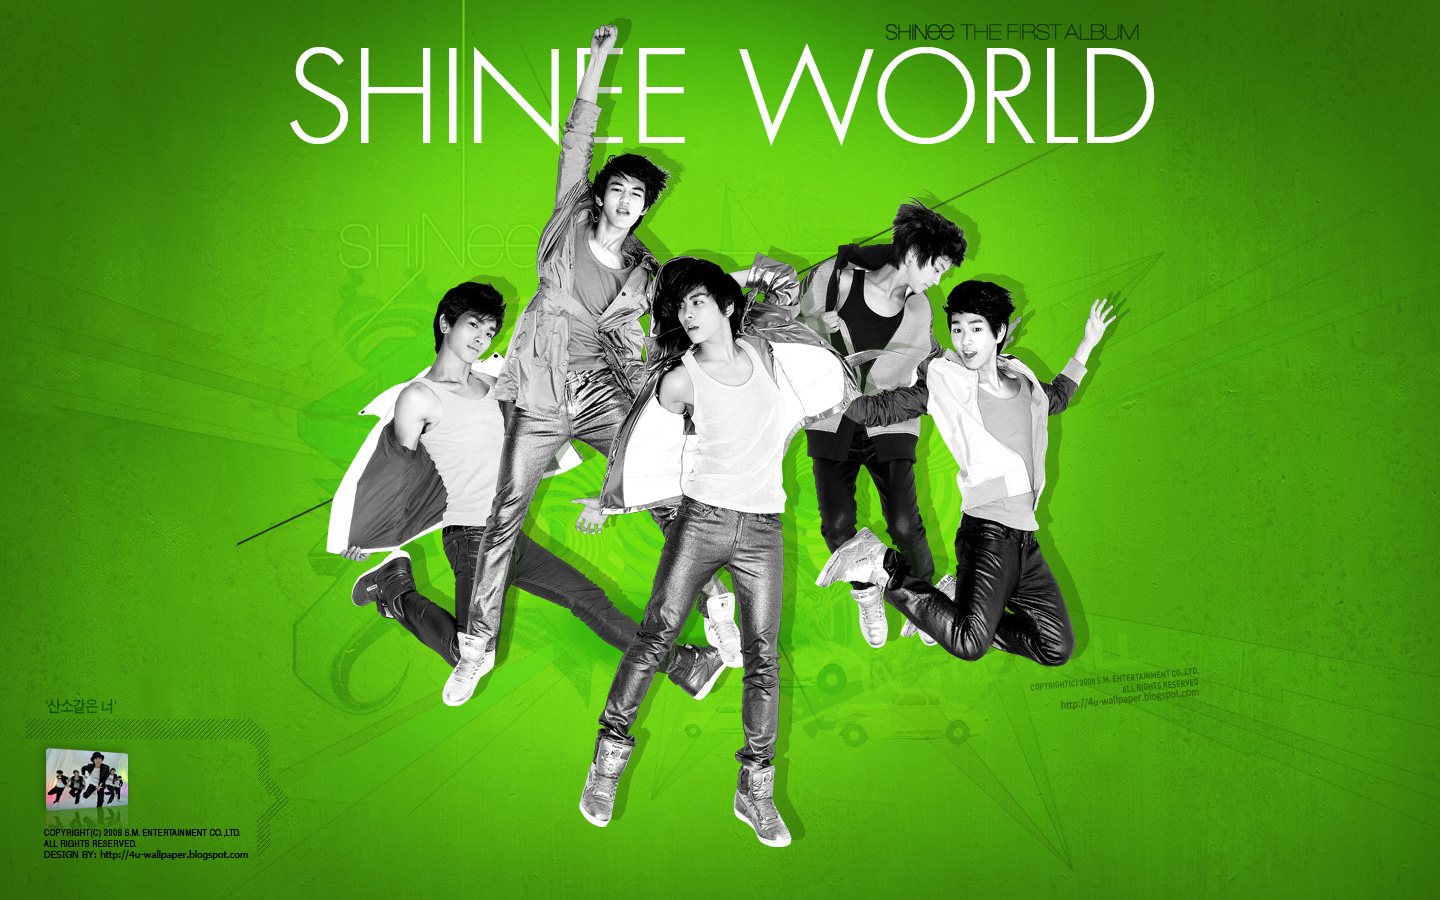 http://2.bp.blogspot.com/_tIFVXR2hN5Q/TO-JmiPWQBI/AAAAAAAAD-U/9lw3ih2AHpM/s1600/SHINEE-WORLD1_Wallpaper1440.jpg